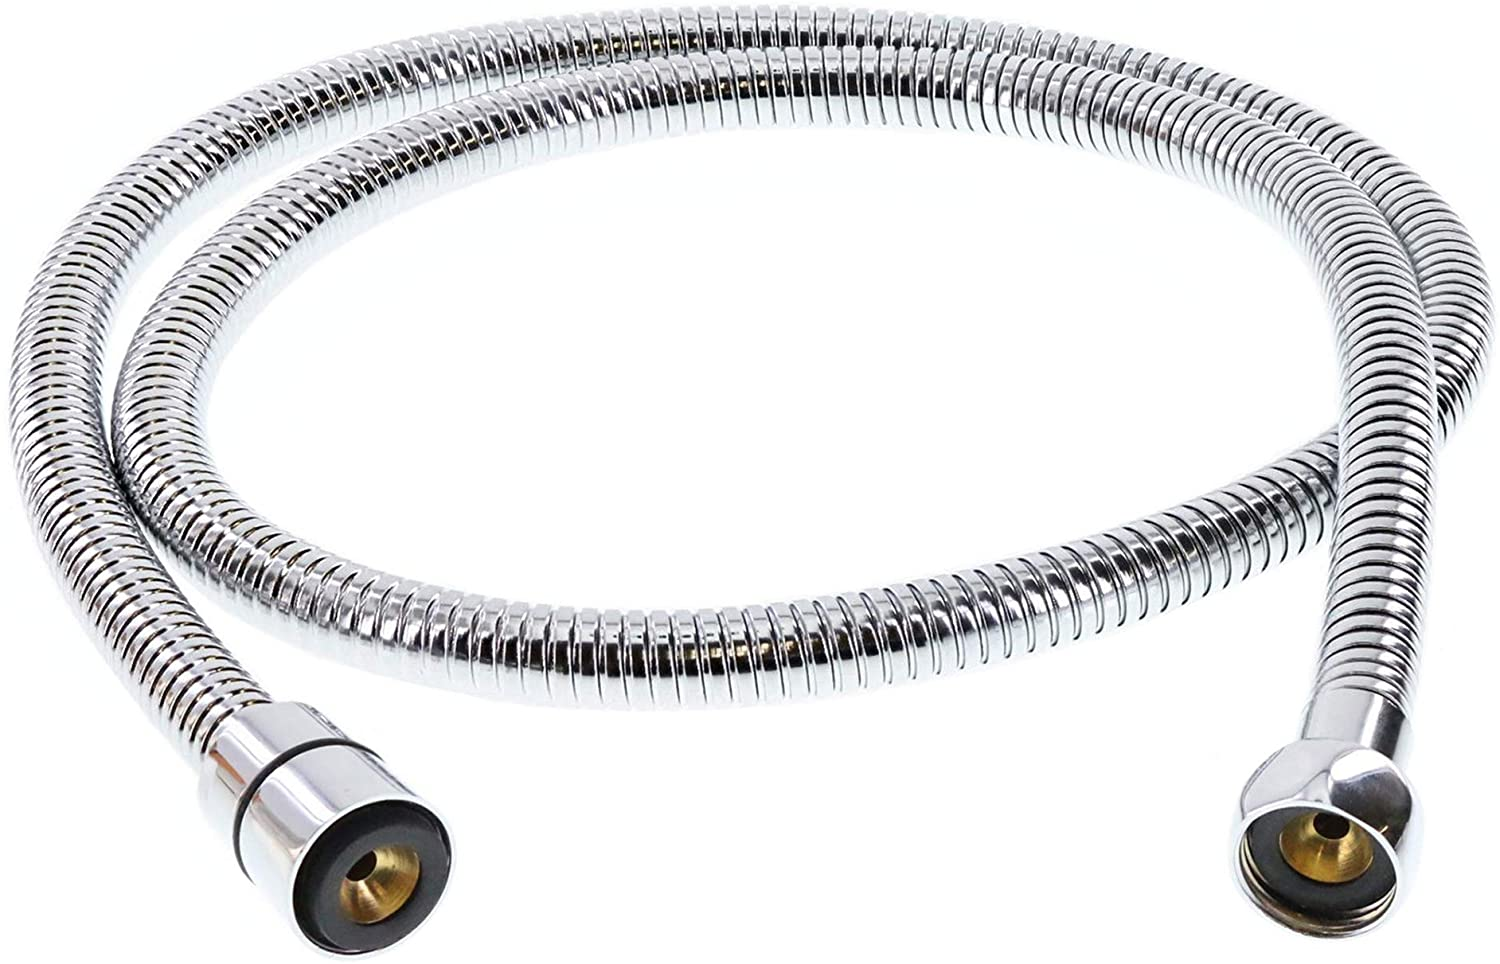 ShowerMaxx, Extra Long Double Interlock Stainless Steel 60 Inch Handheld Shower Head Hose Strechable to 80 Inch, Solid Brass Connector, Flexible, No Twist Hose, Leak Proof, Polished Chrome Finish